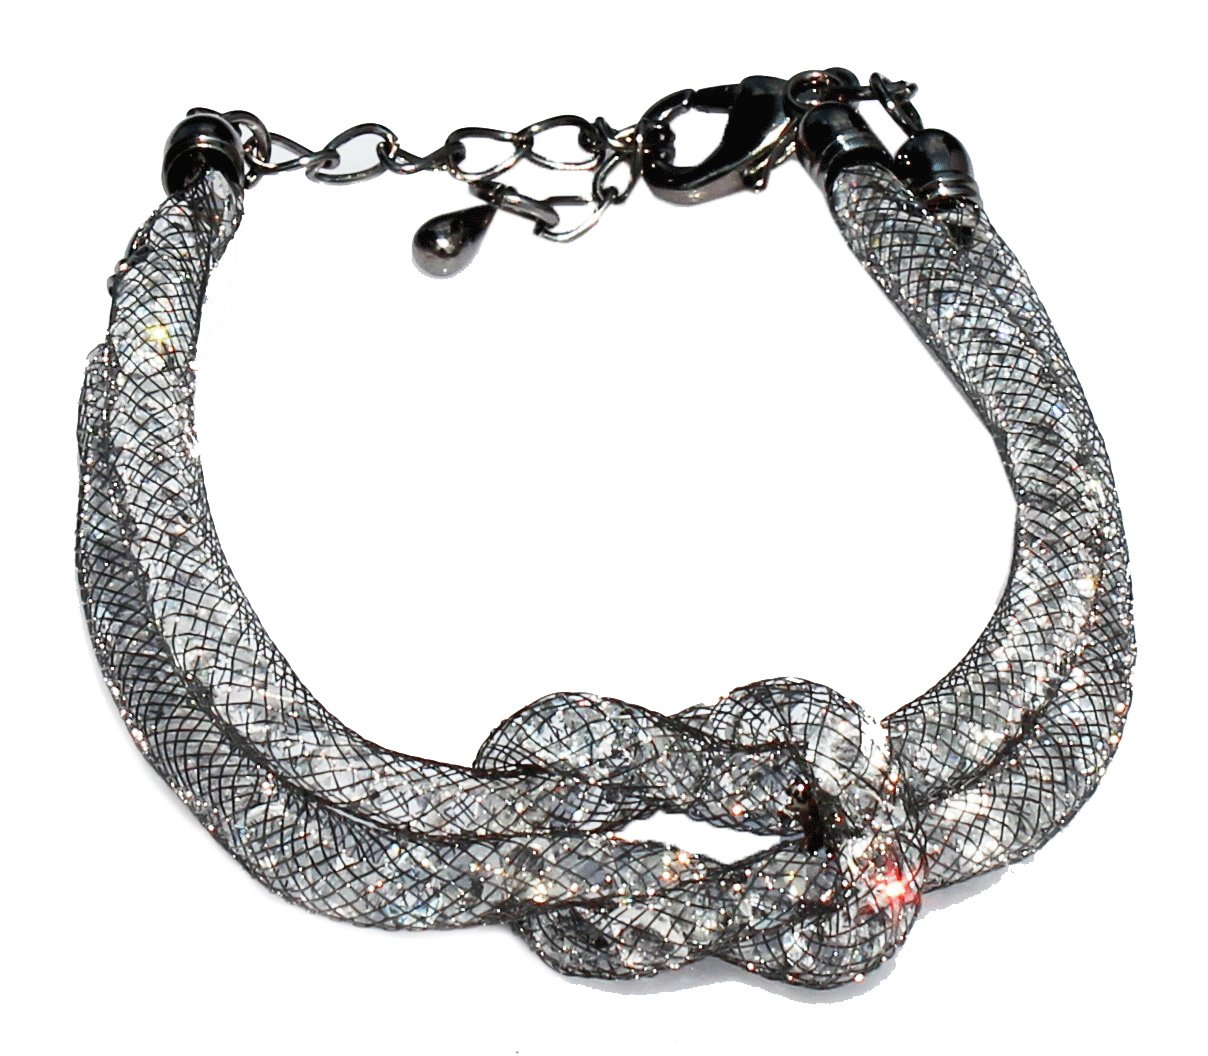 Gun Metal Knot Mesh Bracelet with Clear Crystals inside